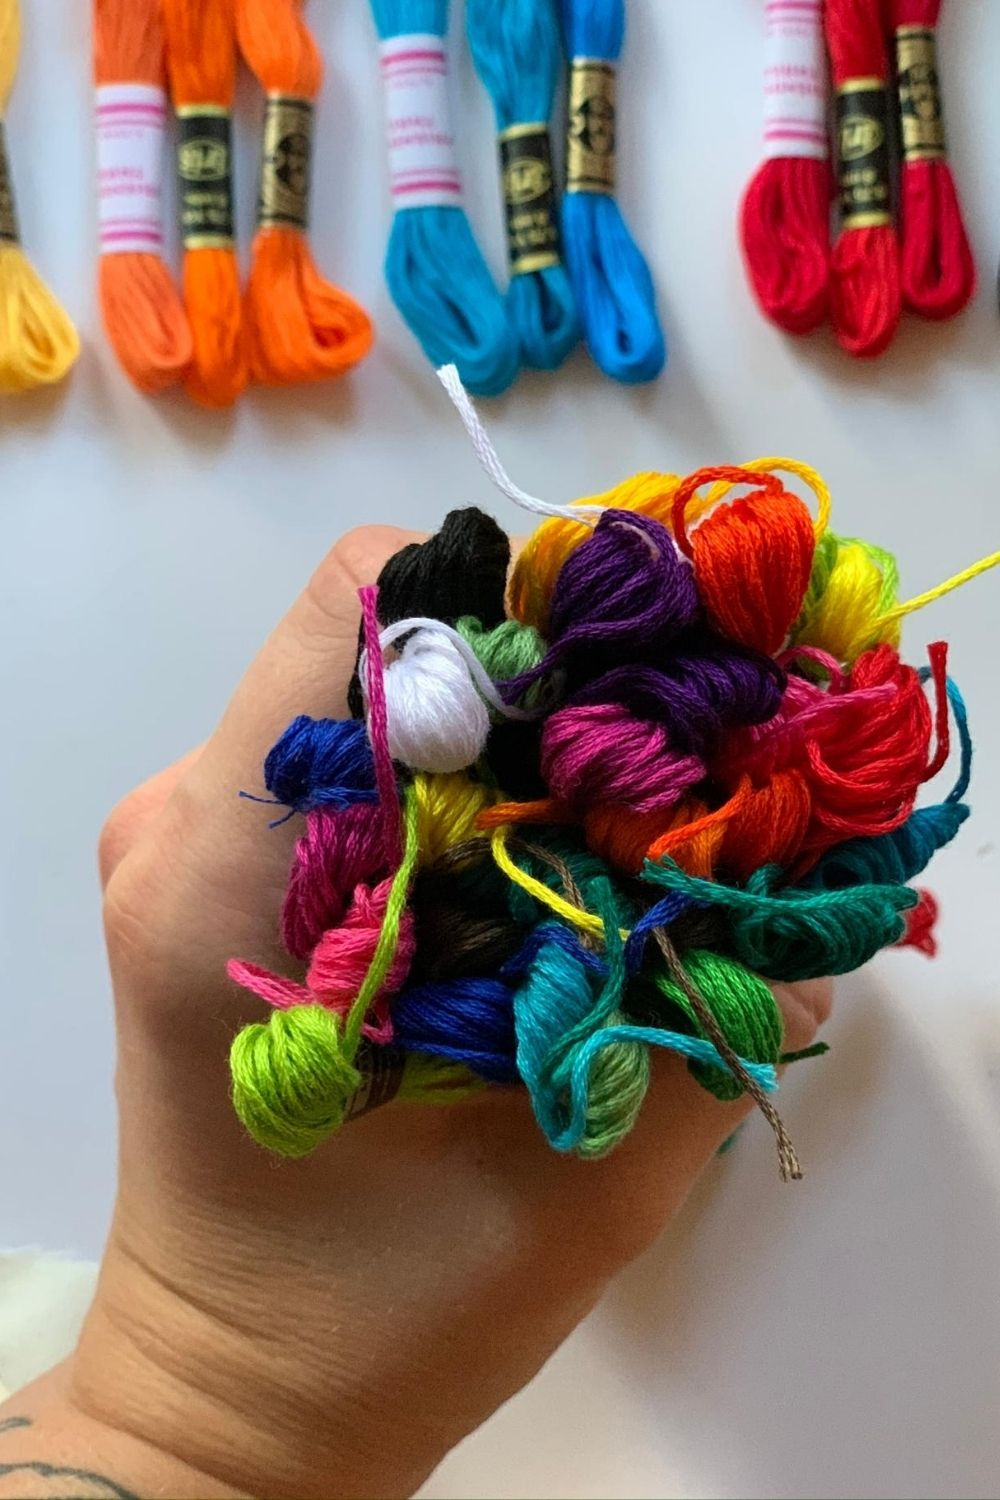 Embroidery Thread Review – What's the Best Hand Embroidery Thread?